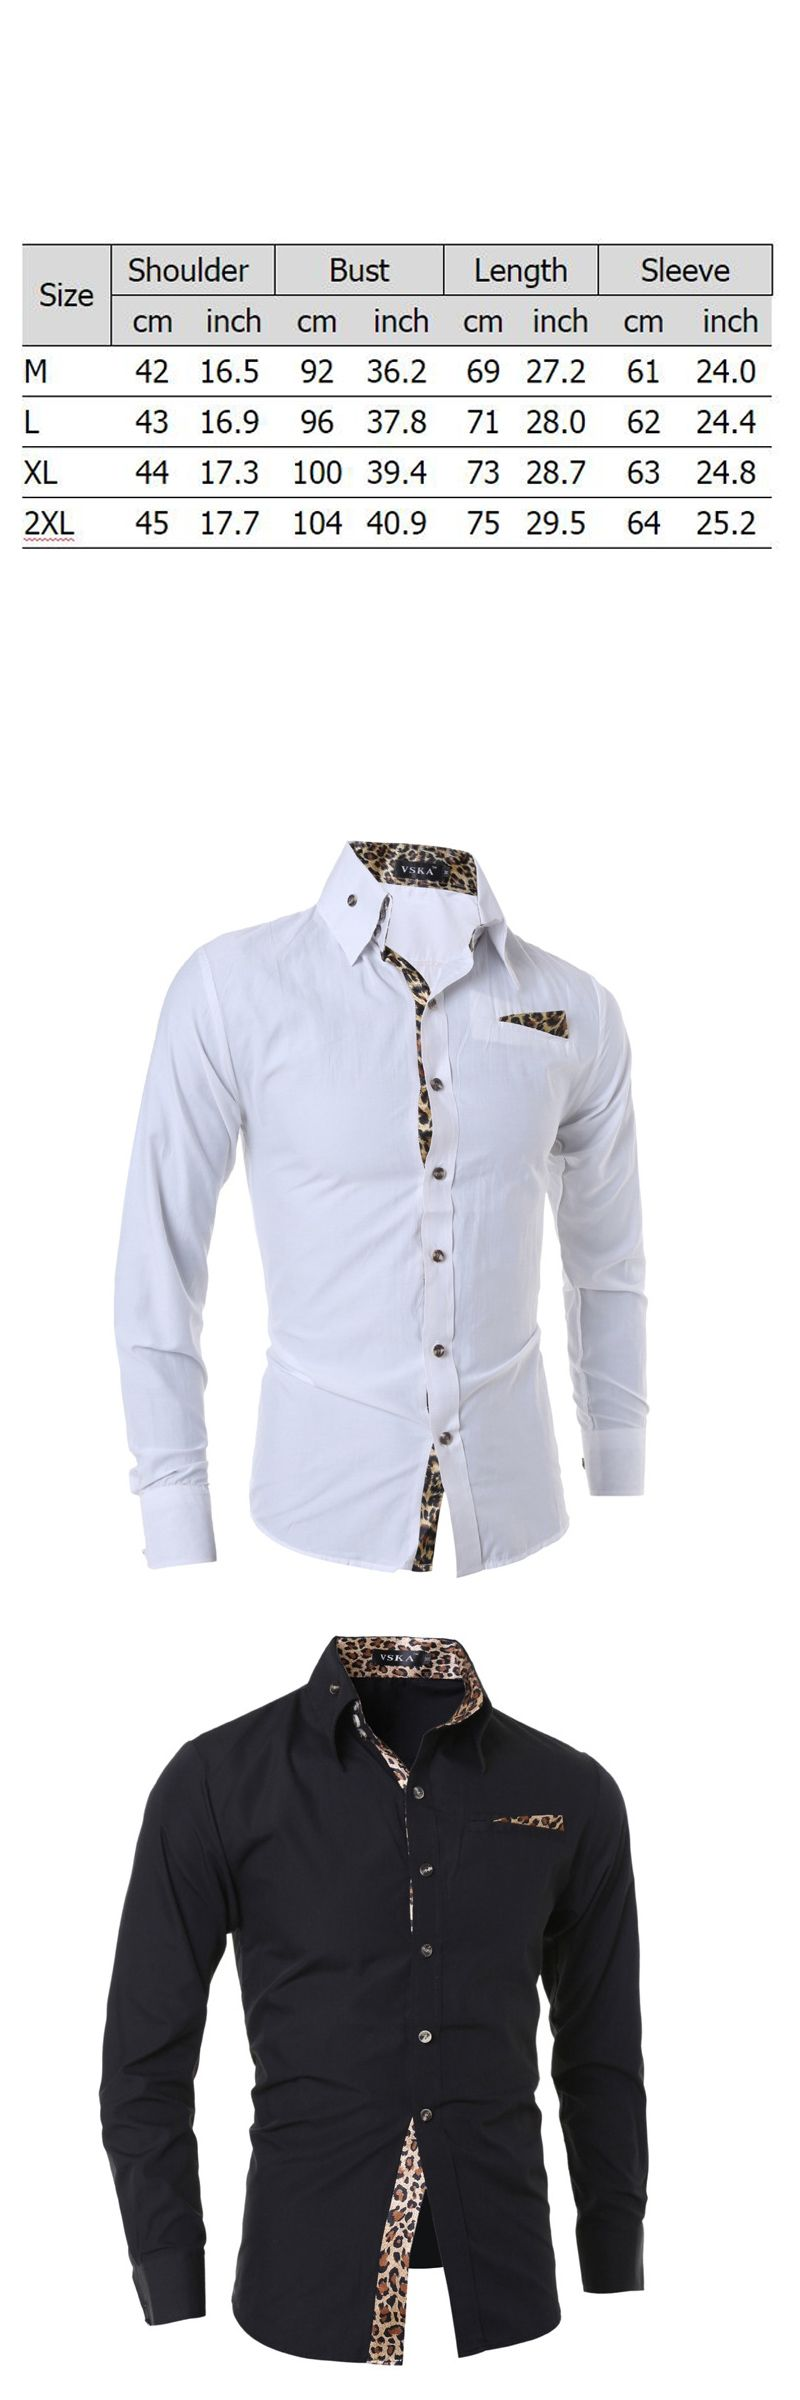 2f654c6e0bd Leopard Print Men s Long Sleeve Shirt Cotton Causal Classic Stand Collar  Slim Brand High Quality Camisa